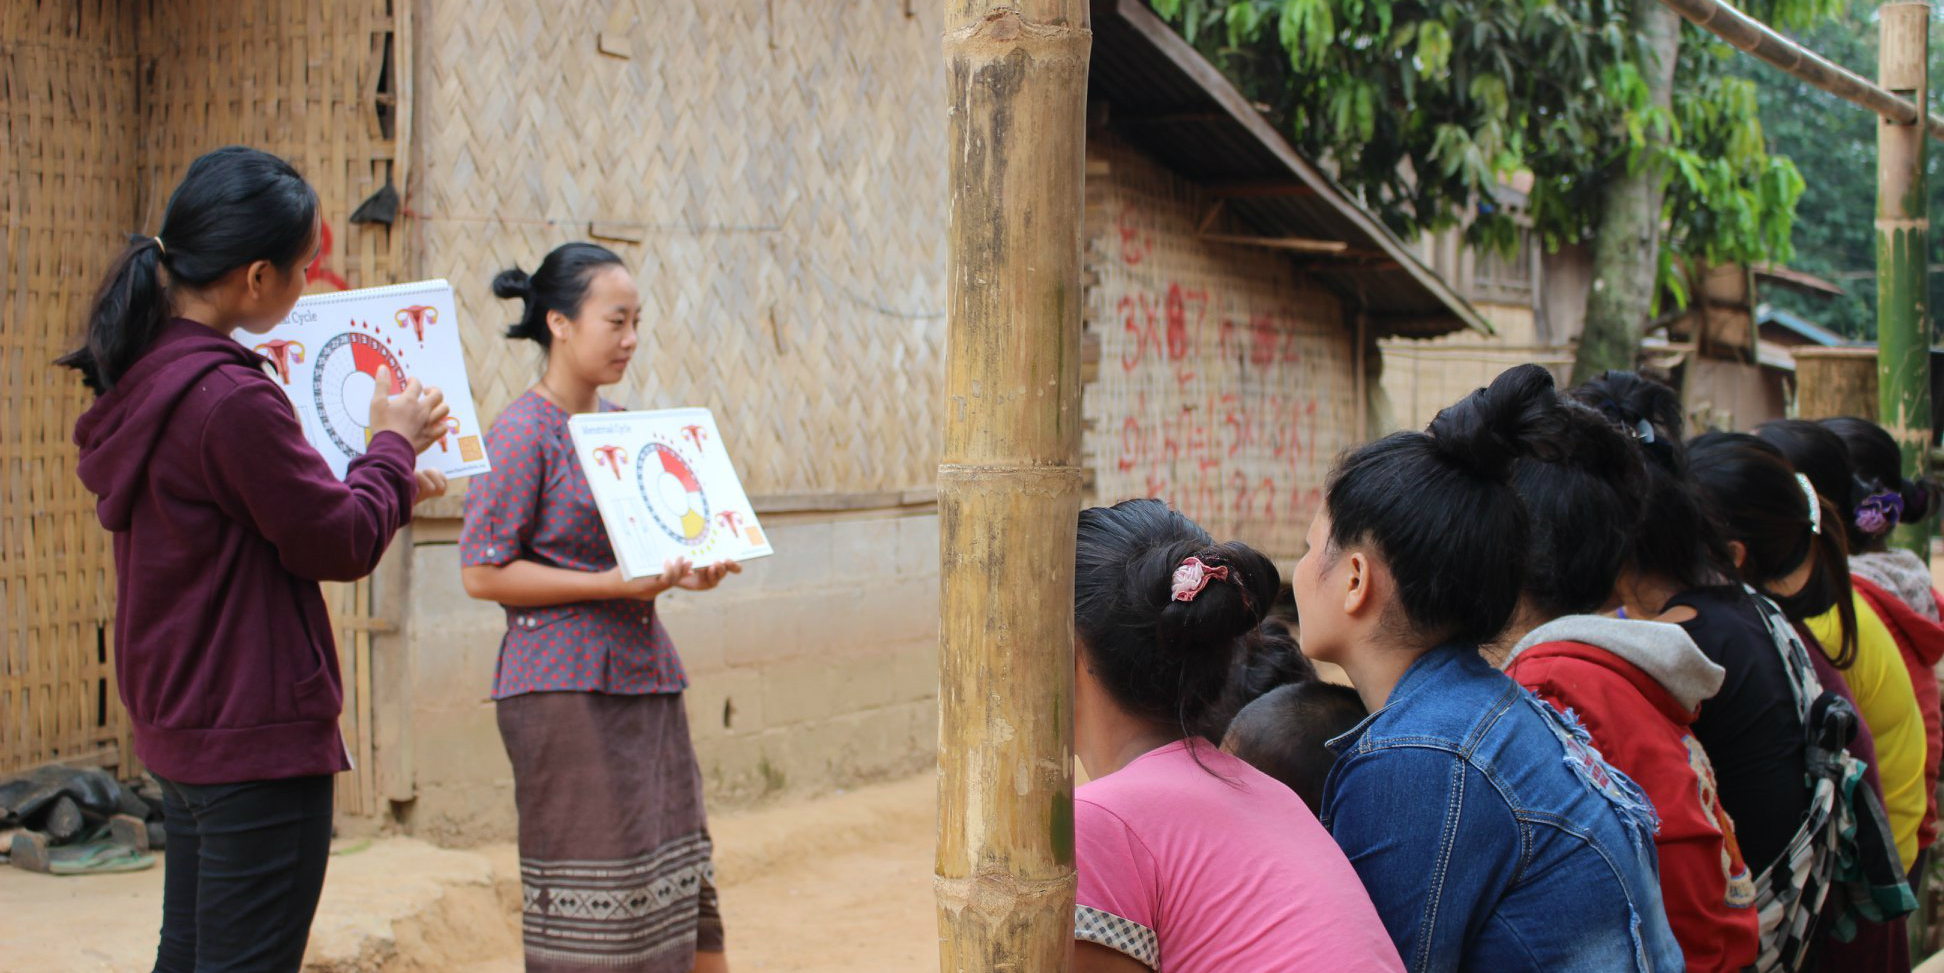 Pay to volunteer with GVI, and your program fees go toward increasing local capacity. Pictured: Two local women from Laos conduct a menstrual health workshop in a rural village.